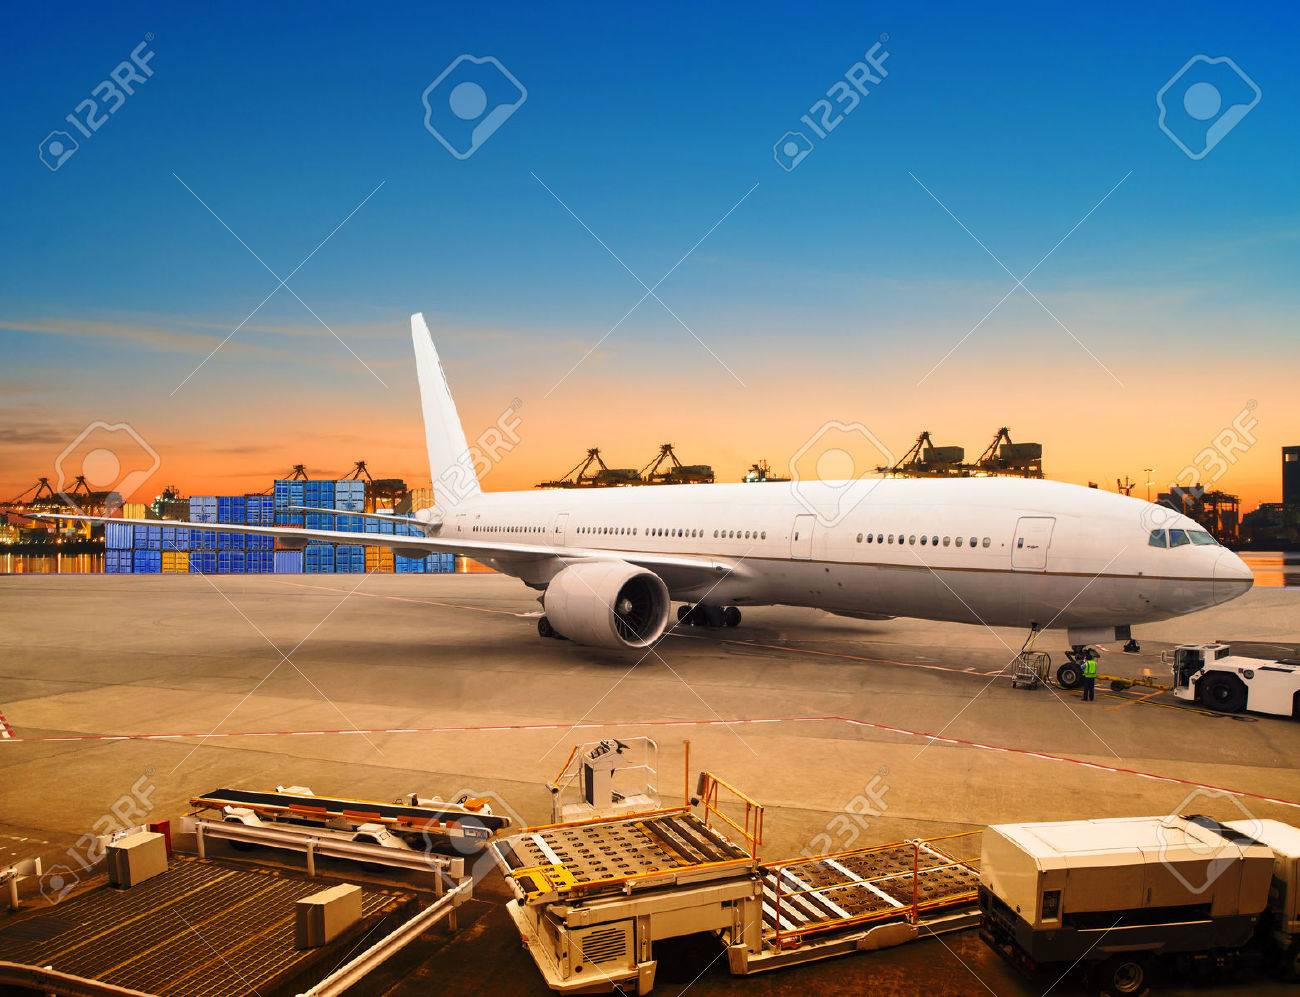 freight transportation images u0026 stock pictures royalty free